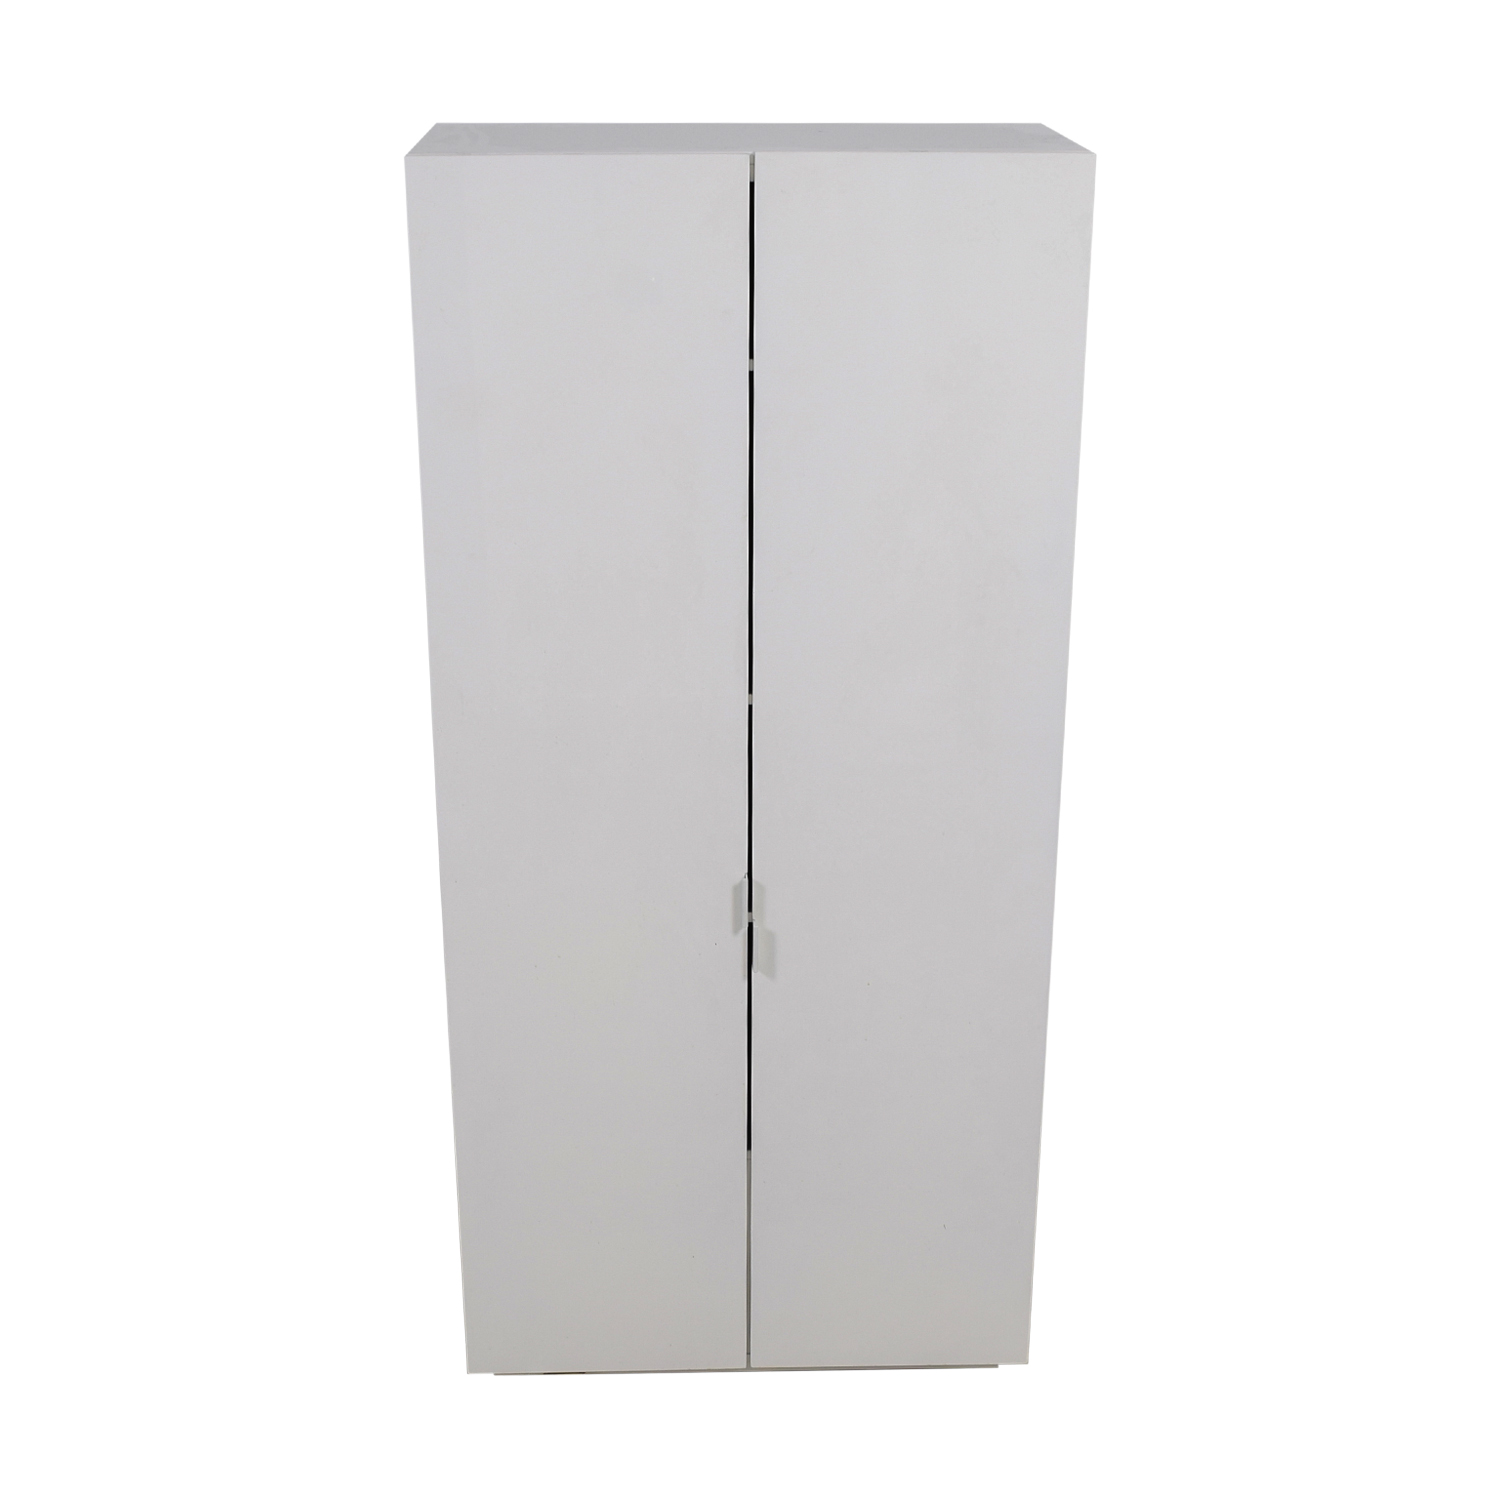 buy CB2 White Lacquer Wall Wardrobe with Shelves CB2